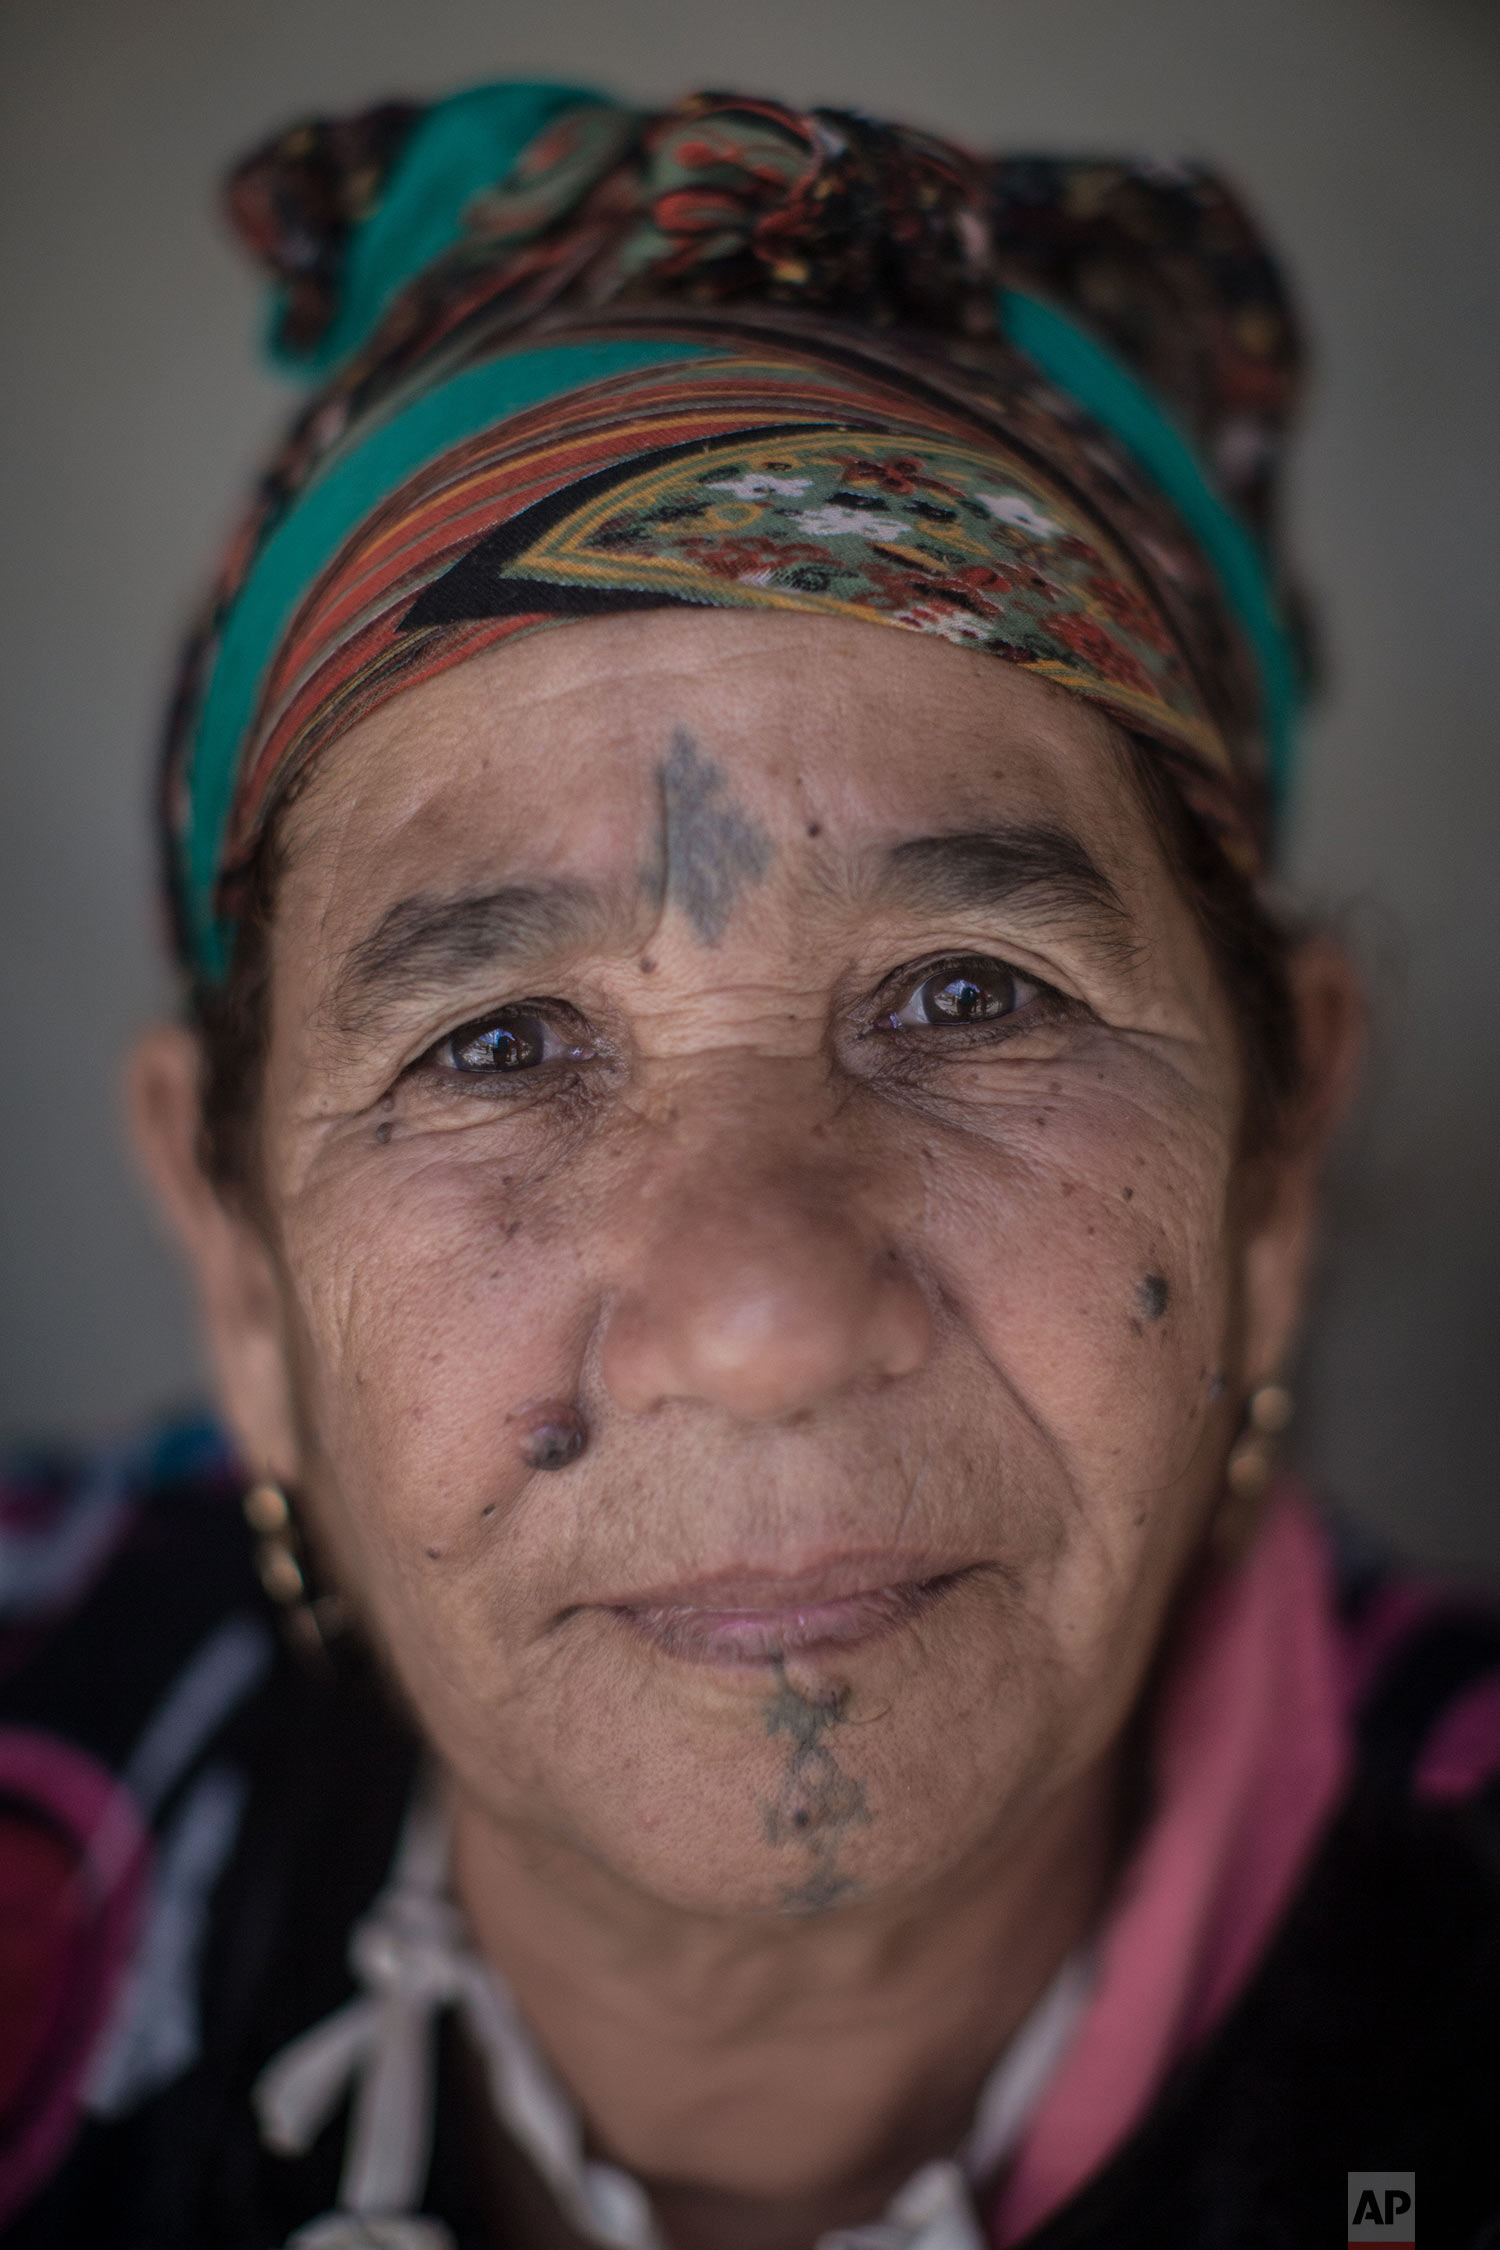 In this Saturday, Oct. 13, 2018 photo, Fatima Hadeoui, 63, poses for a portrait displaying her face tattoo, in the Middle Atlas town of Anergui, near Azilal, central Morocco. (AP Photo/Mosa'ab Elshamy)